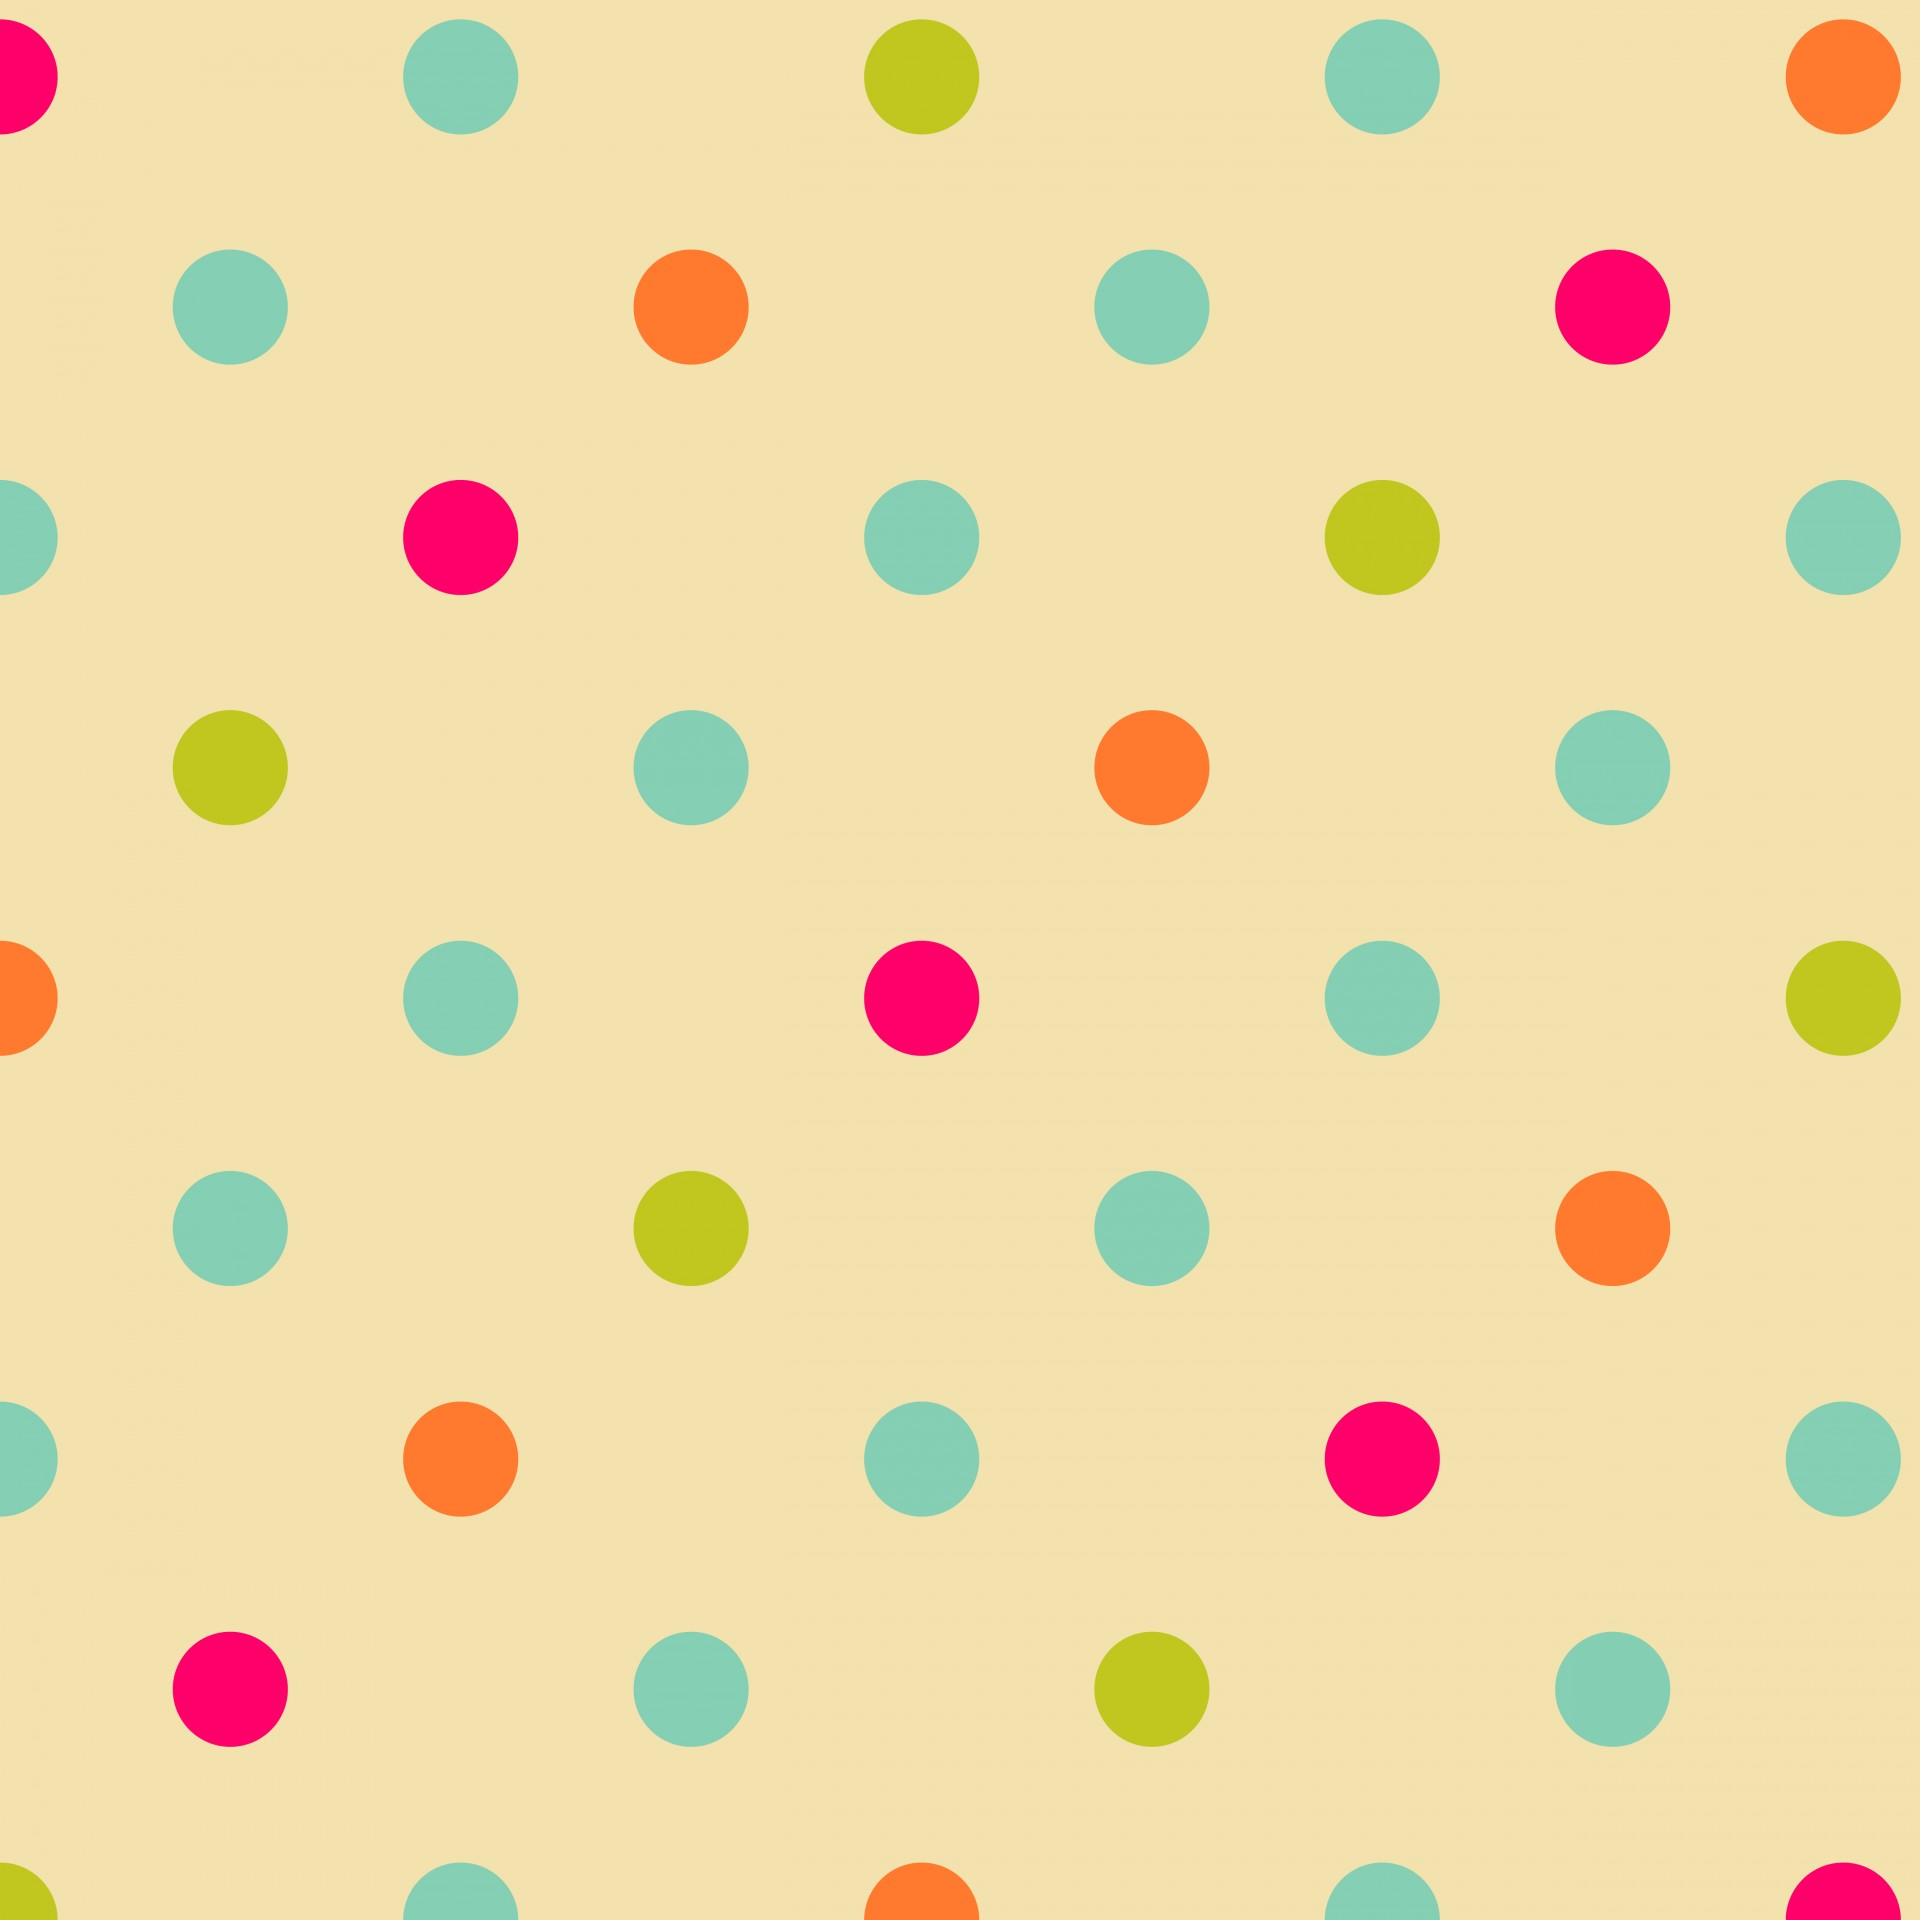 colorful polka dots wallpaper #3440